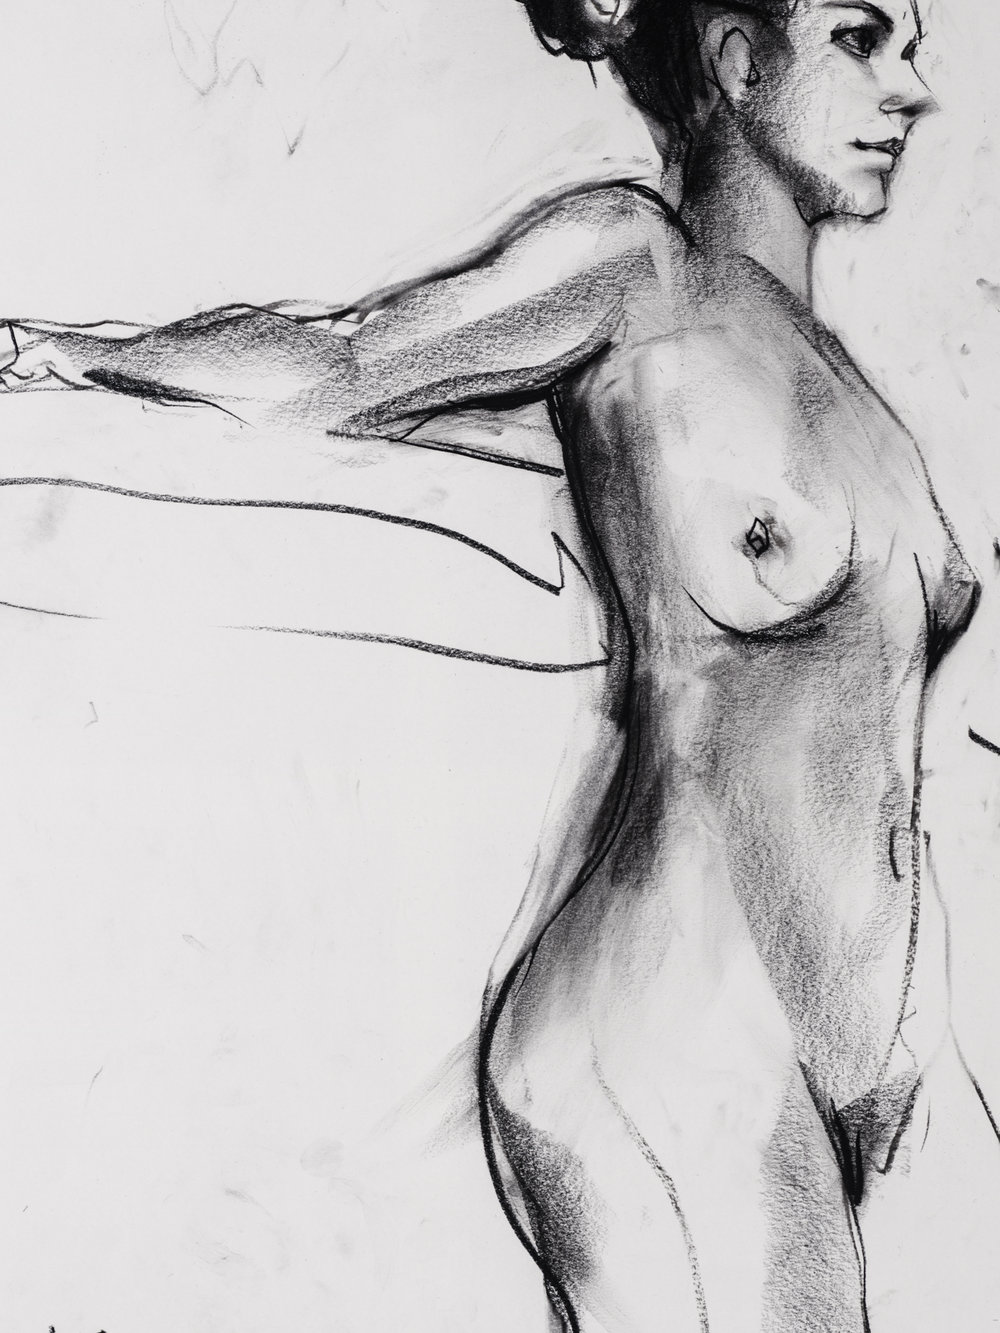 FigureDrawing-wHEYDT-15.jpg